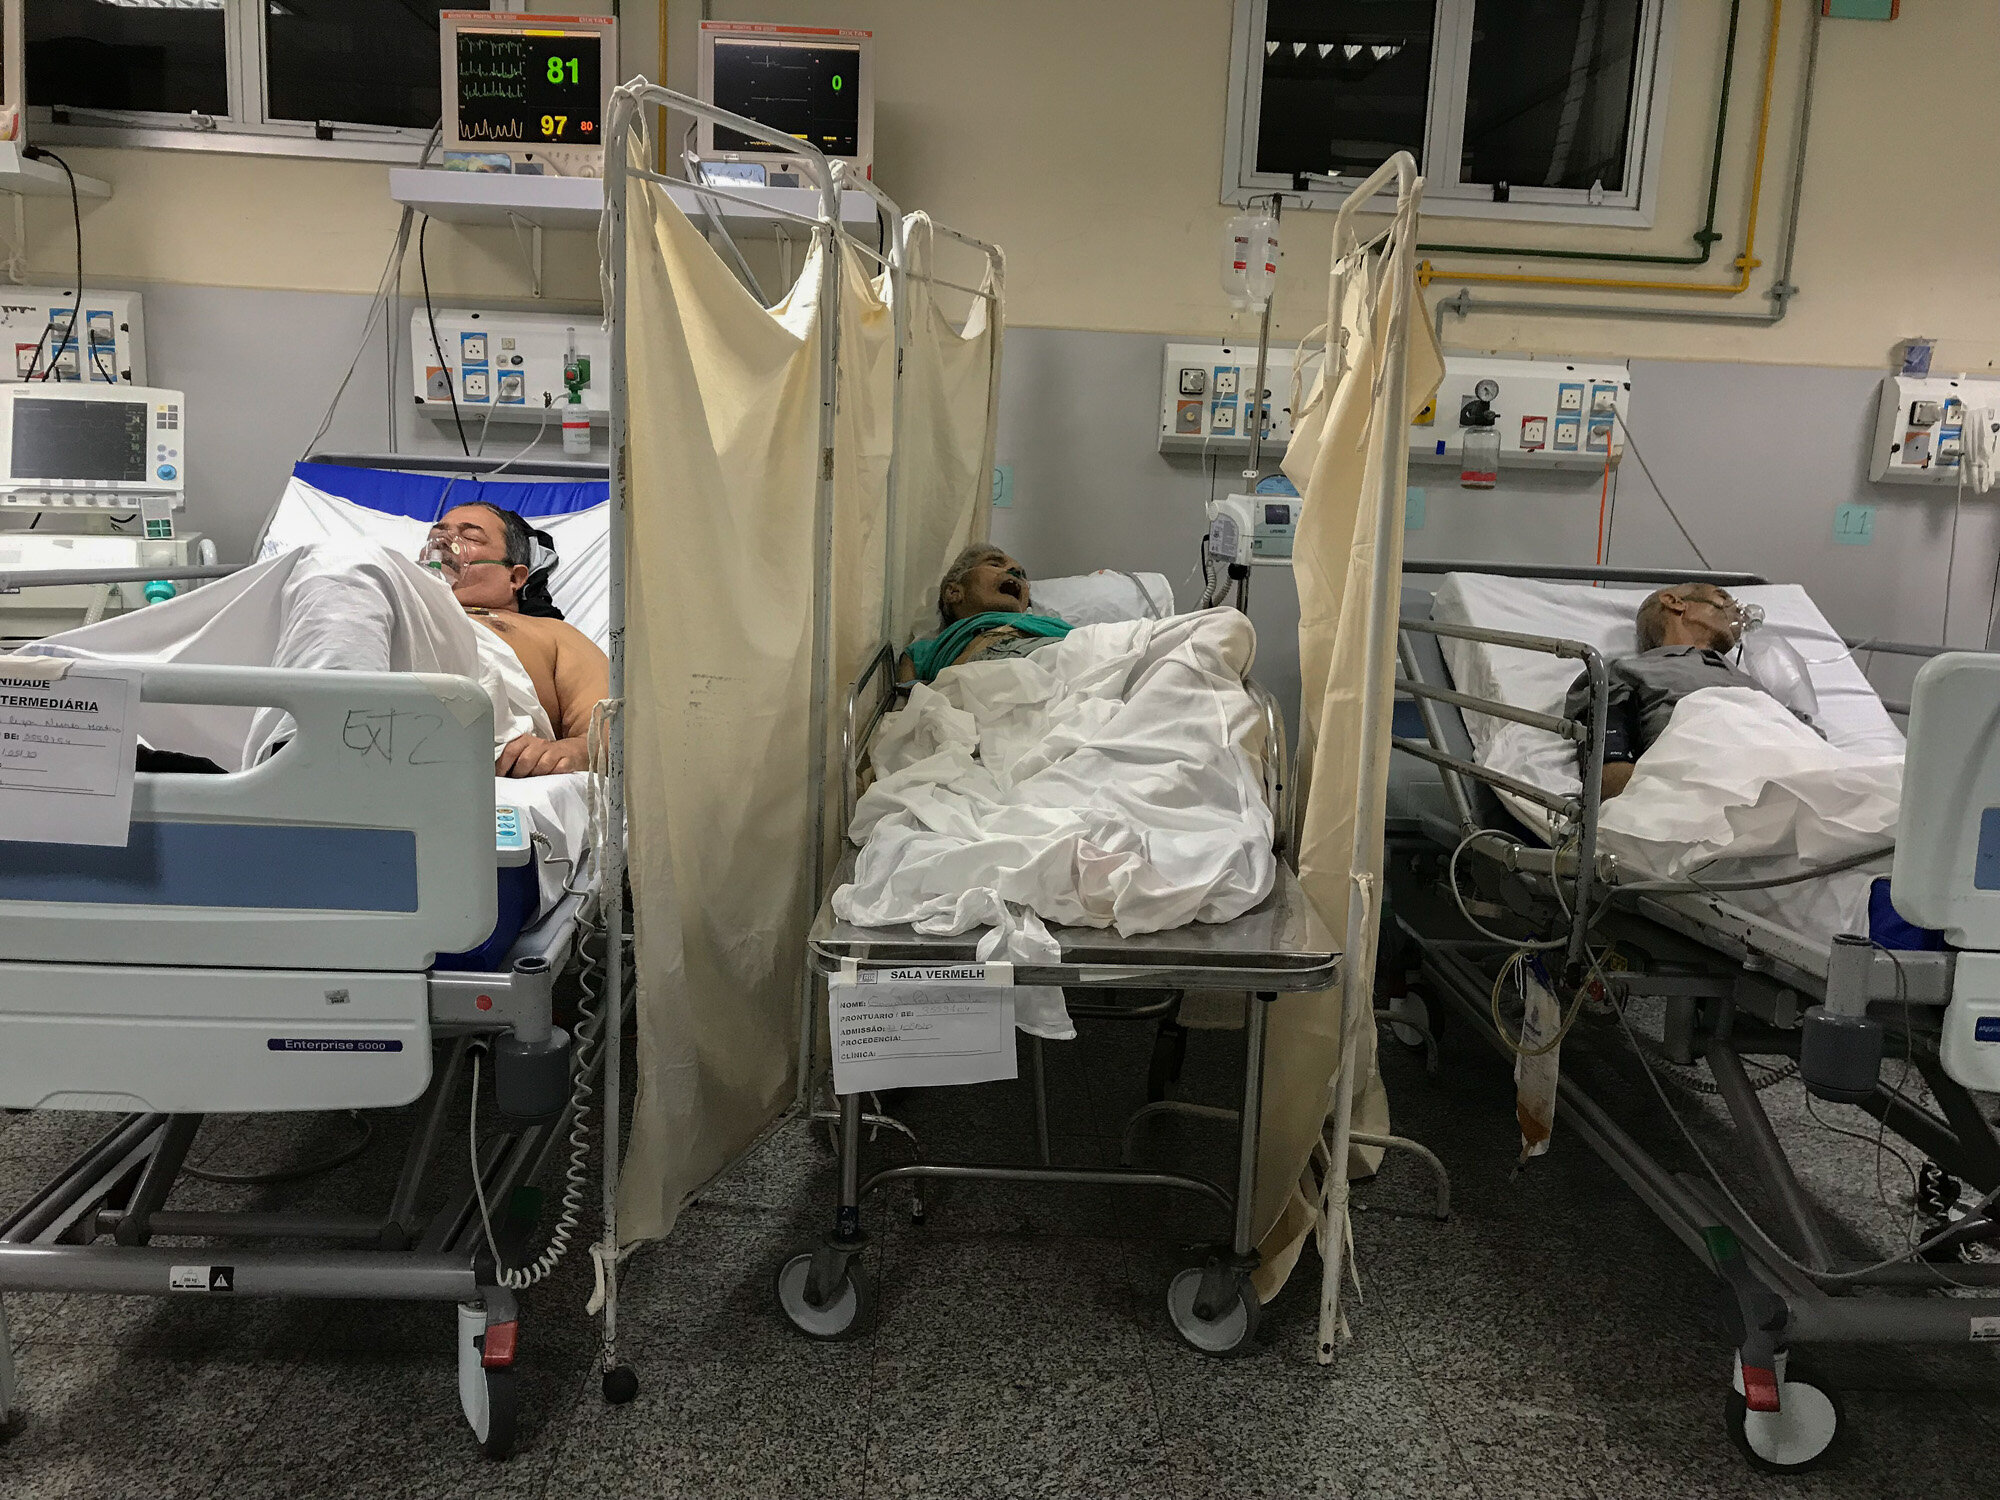 A patient who died from COVID-19 lies on a table between two other patients infected with the coronavirus at the Salgado Filho Municipal Hospital in Rio de Janeiro, Brazil, on May 24, 2020. (AP Photo/Leo Correa)